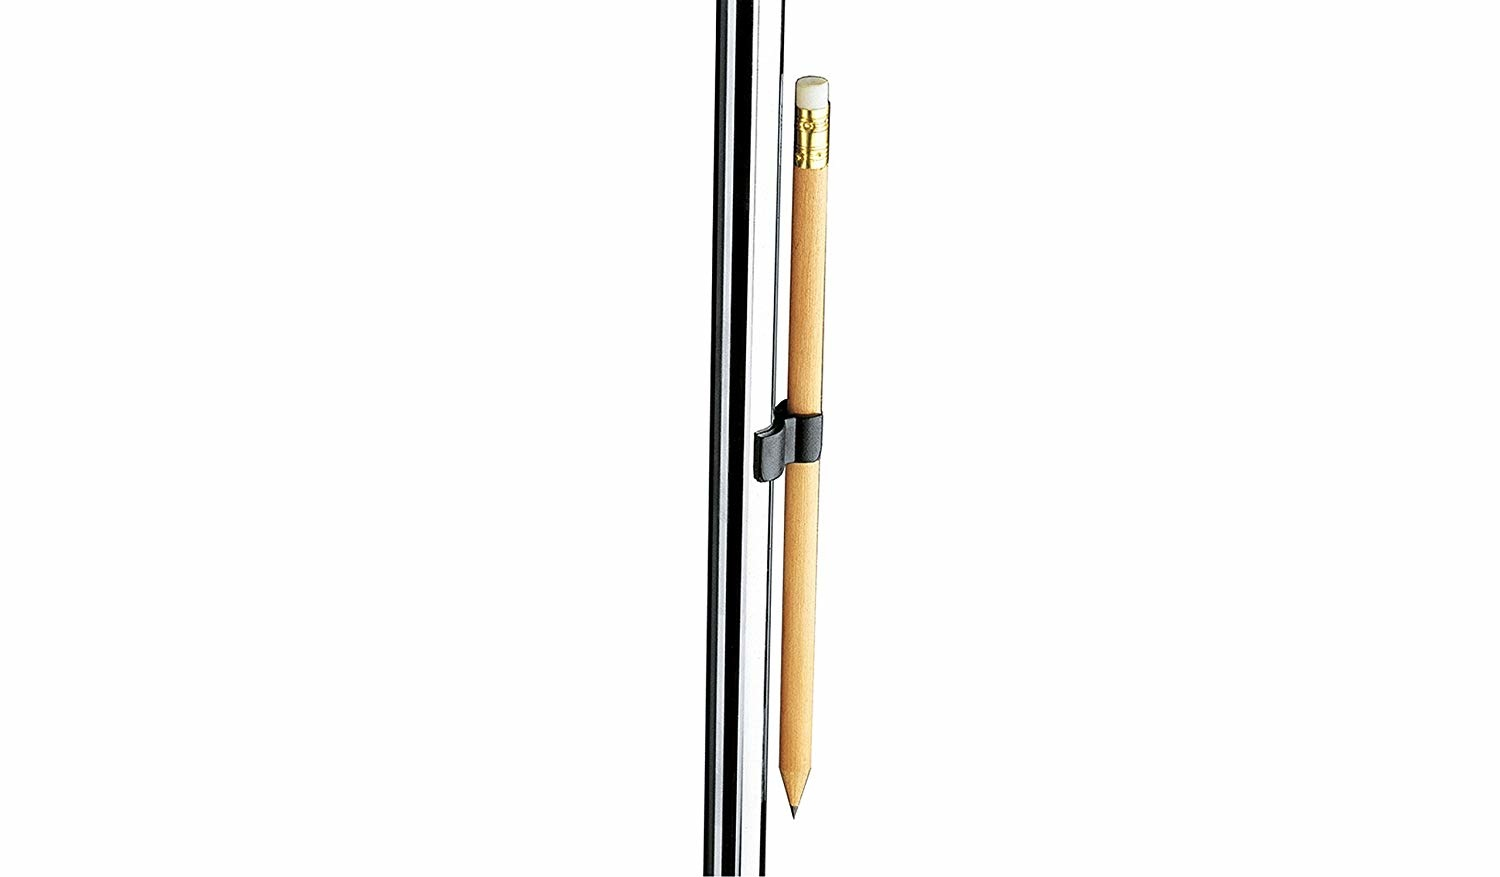 K&M Large Music Stand Pencil Clip 24-26mm